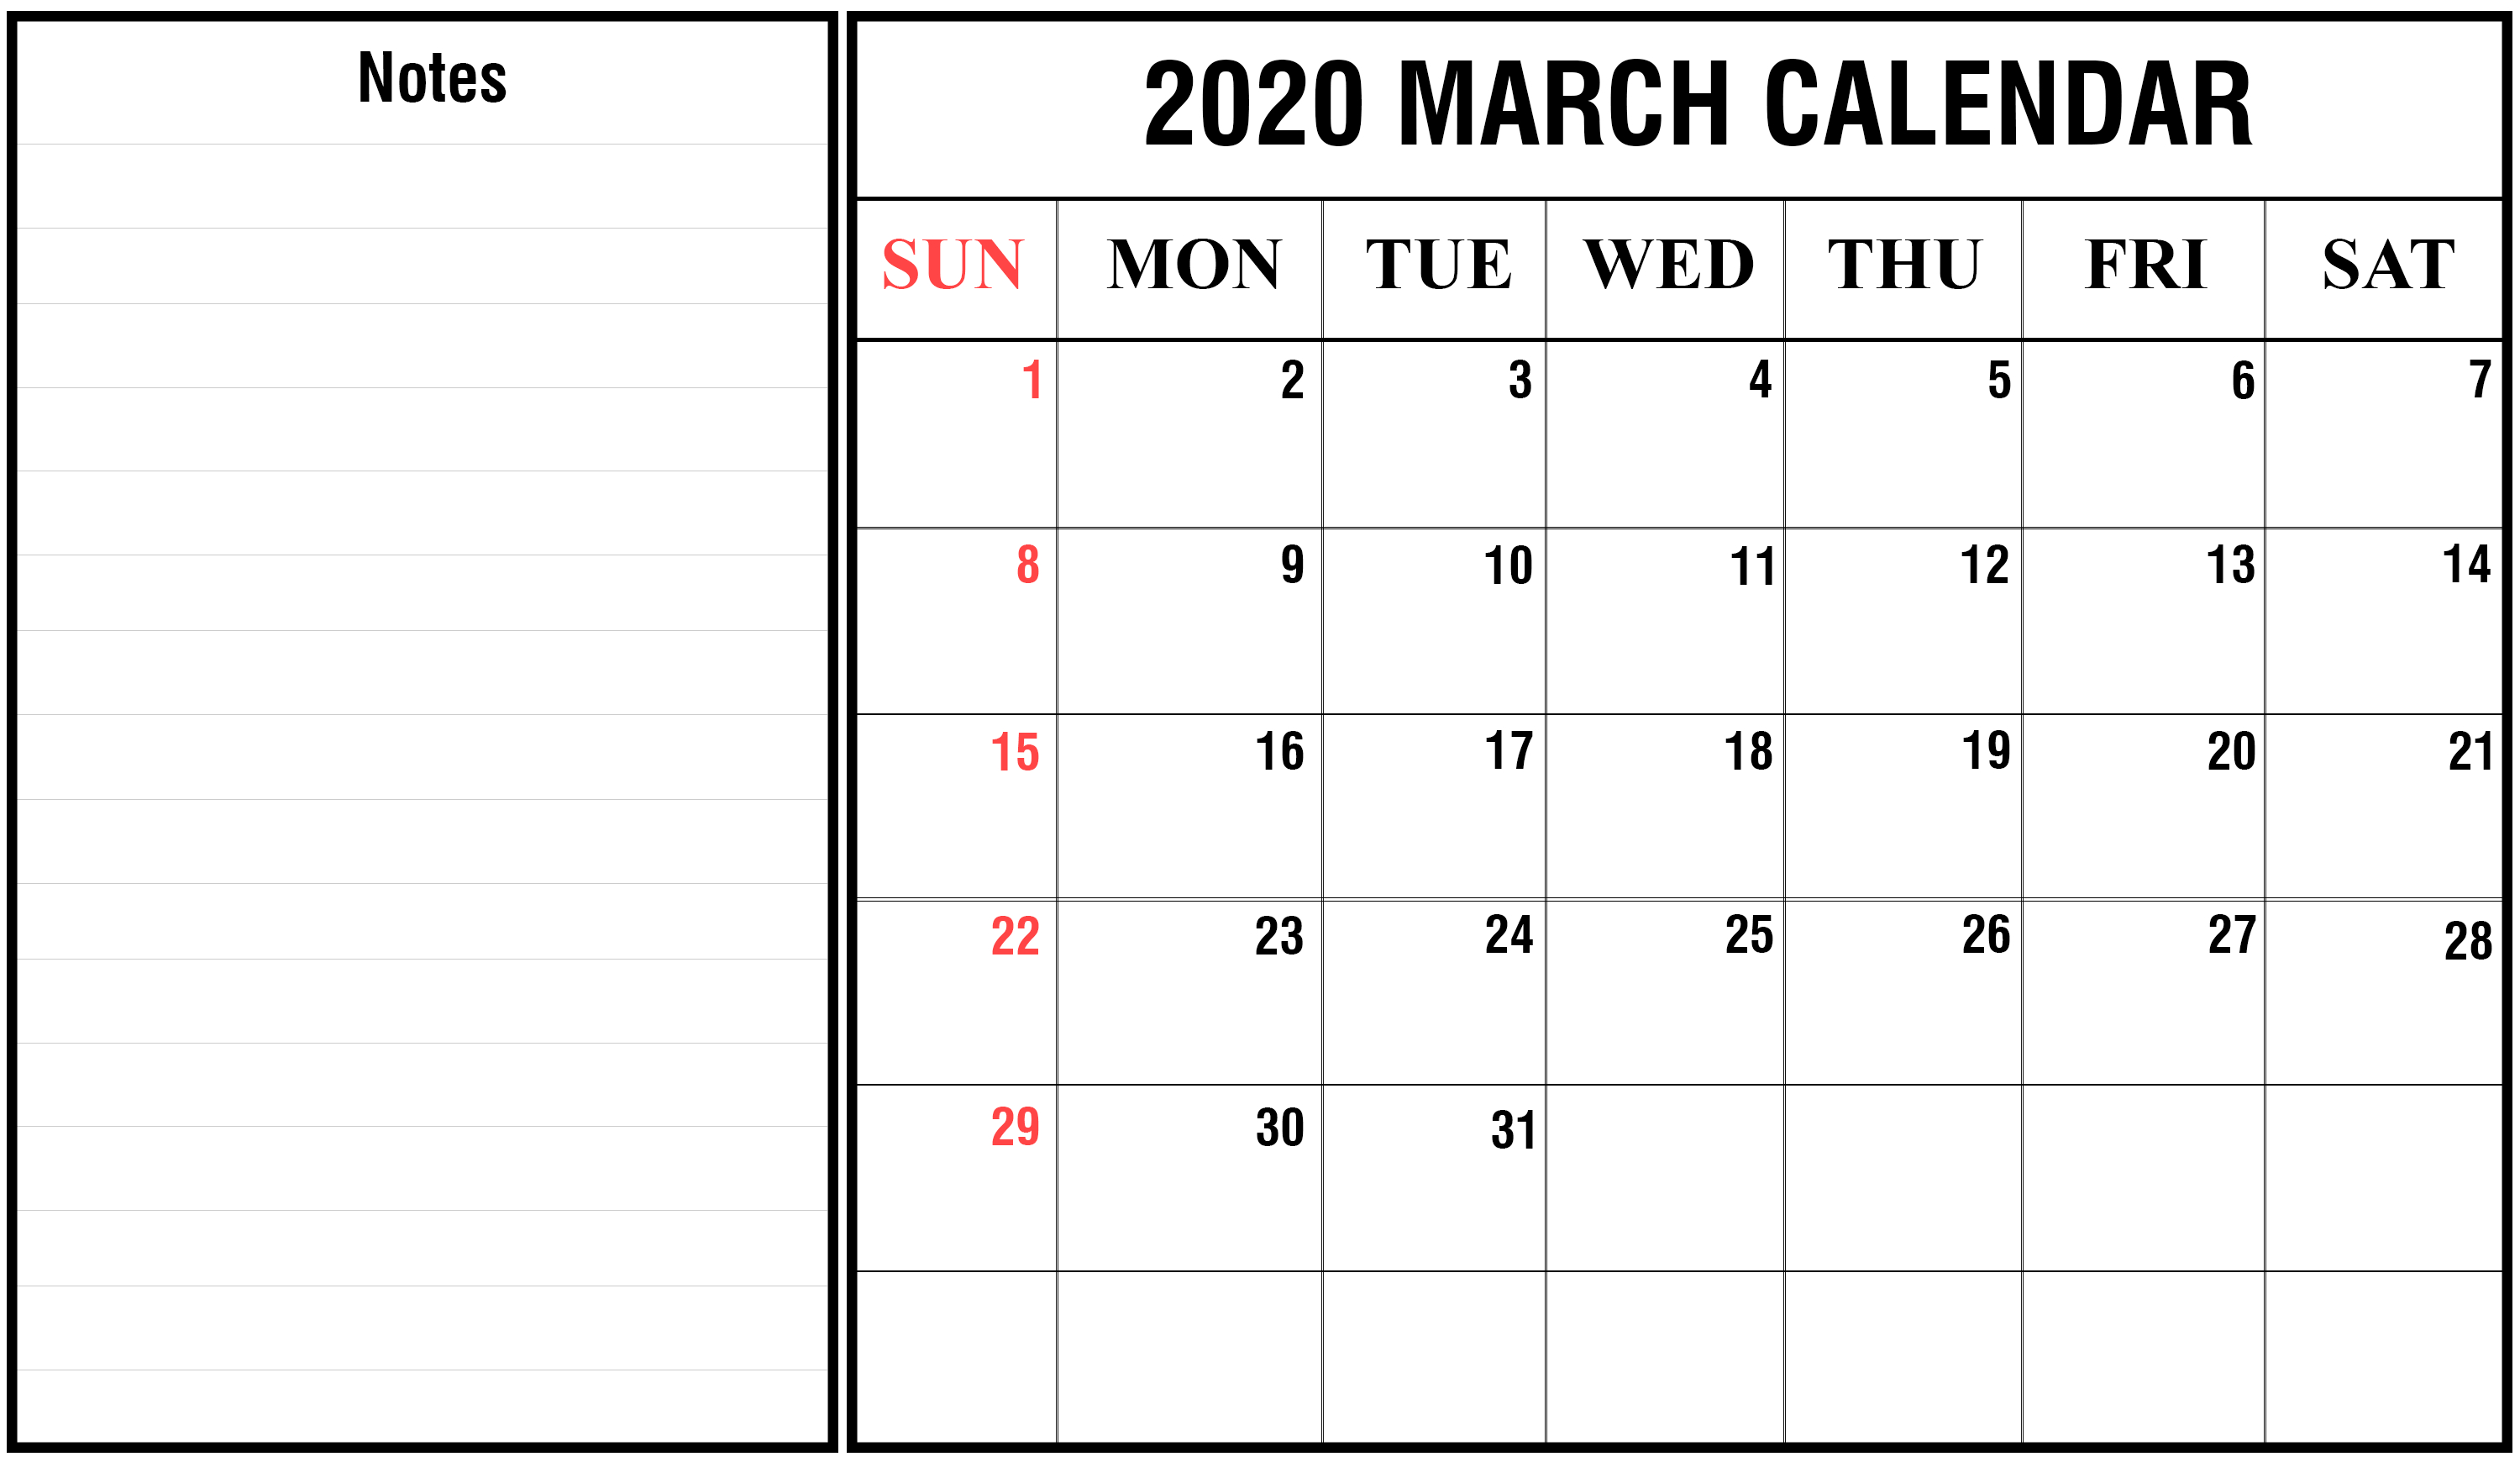 Free Printable March Calendar 2020 Blank Template Editable throughout Printable 2020 Calendar I Can Edit